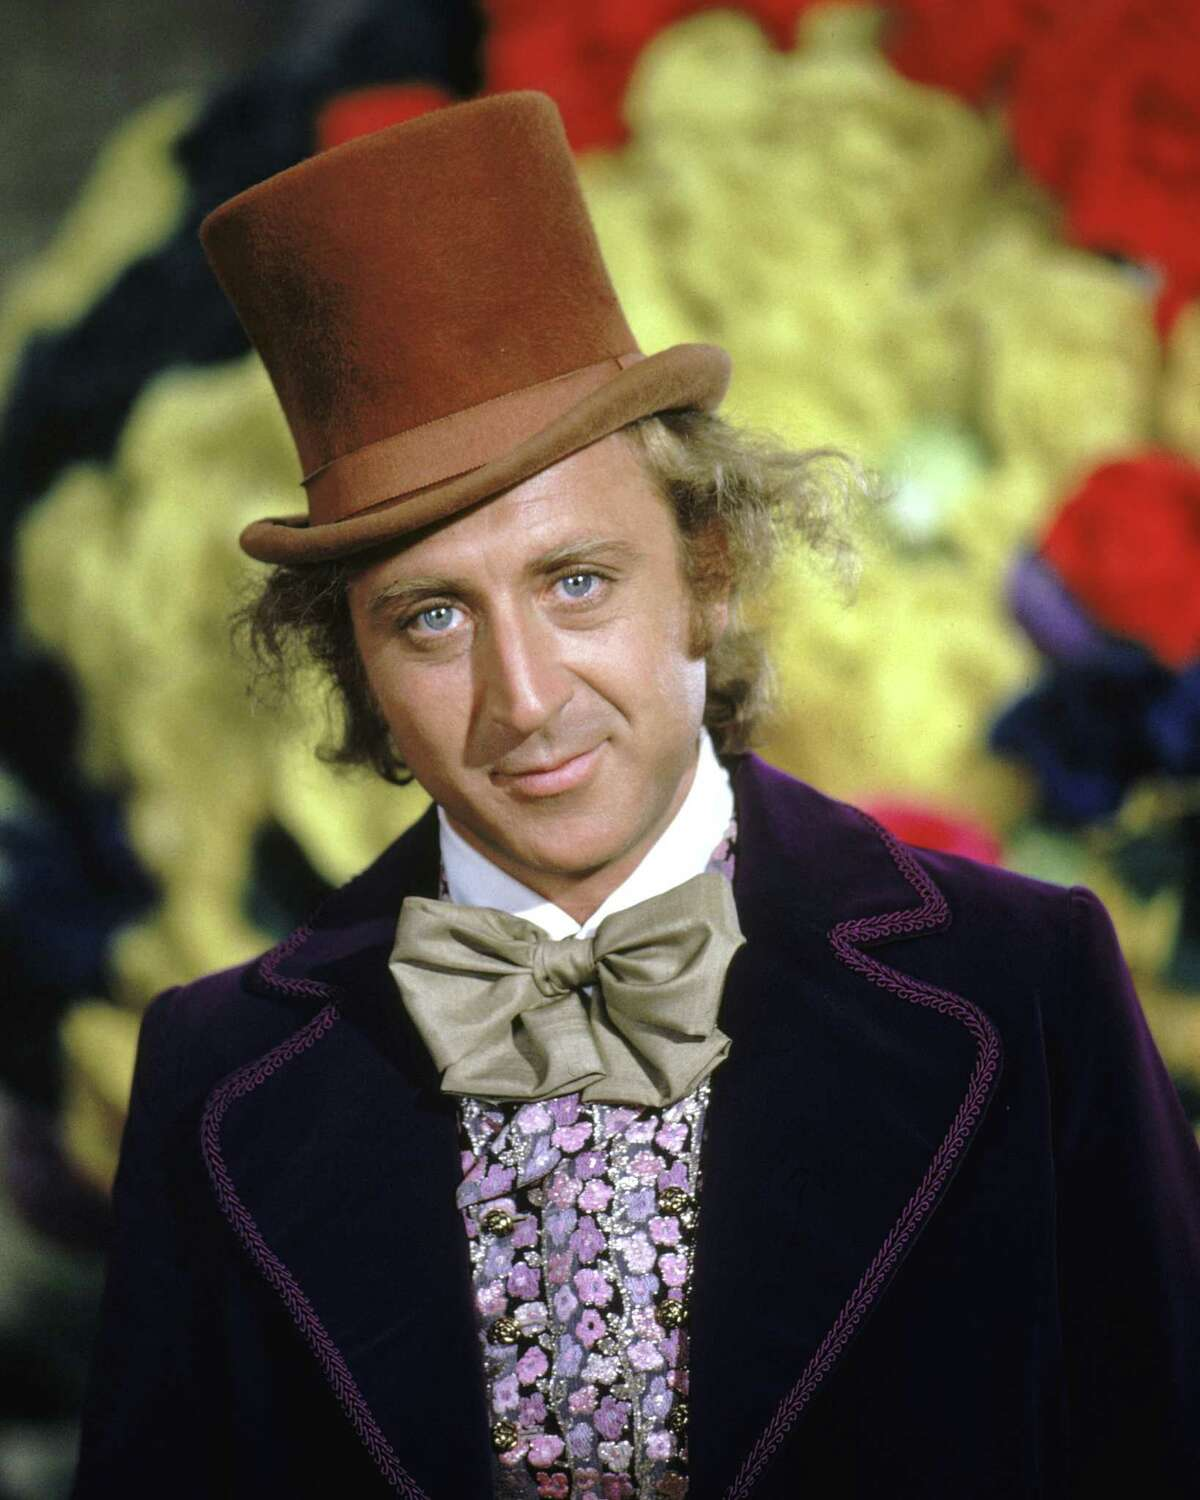 'Willy Wonka & The Chocolate Factory' in Smell-O-Vision: Now through Jan. 3